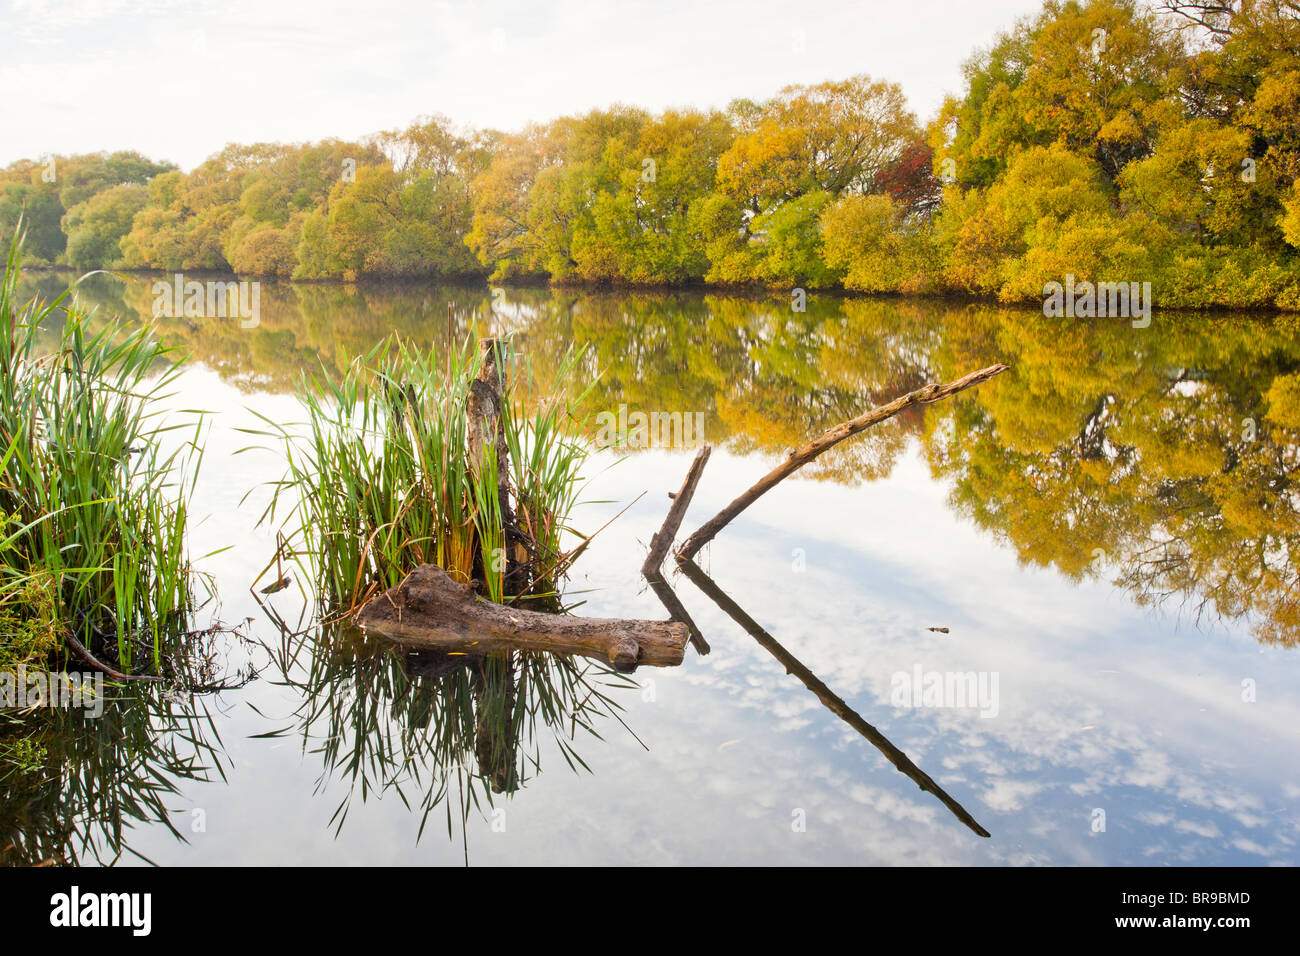 Early Morning Reflections on the Mersey River, Latrobe, Tasmania - Stock Image